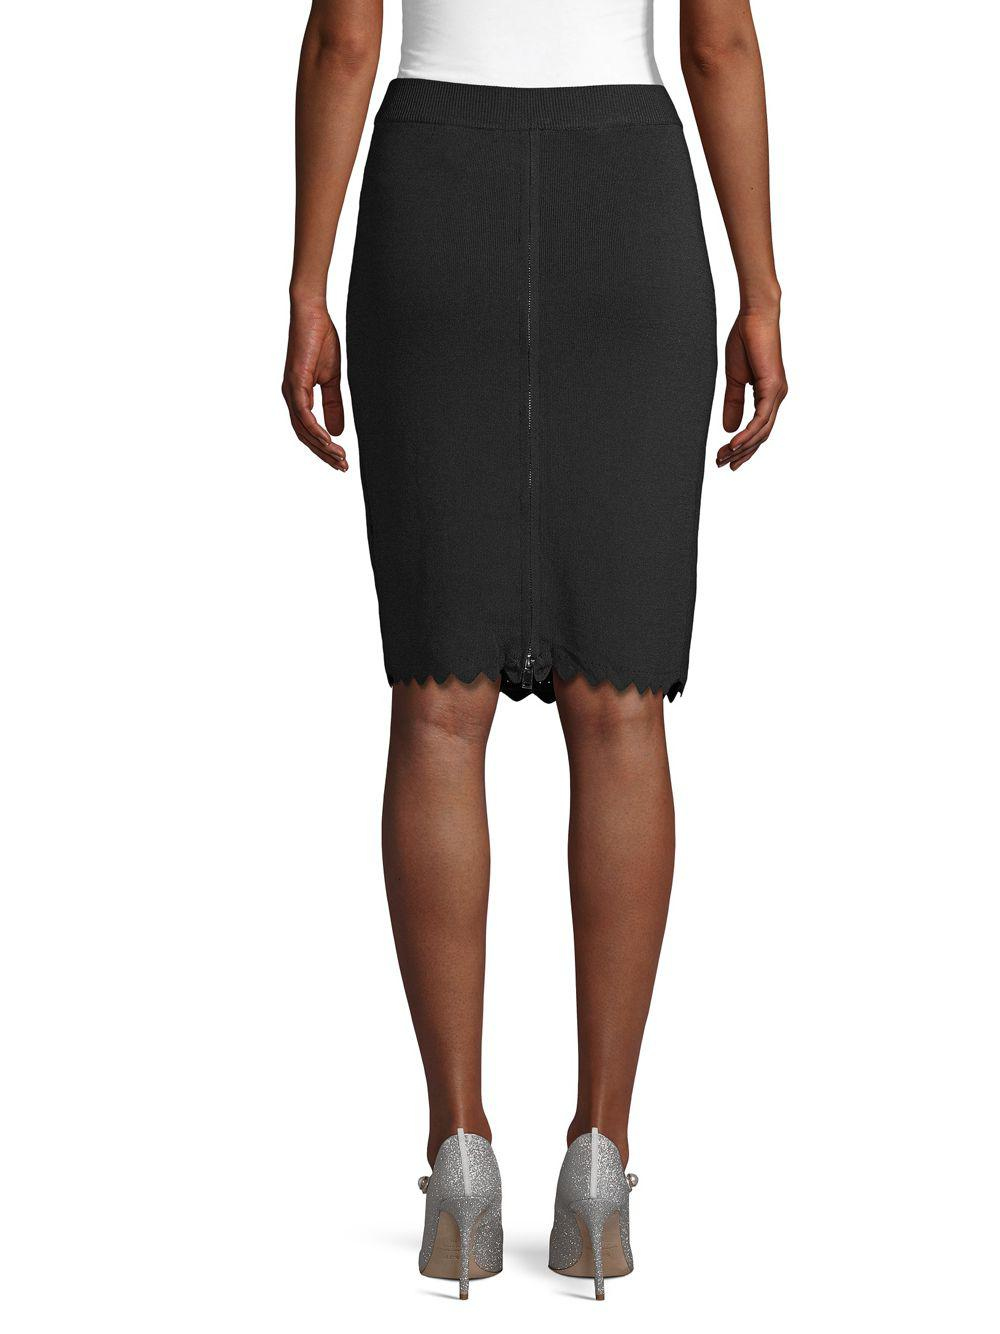 d371404f34 Catherine Malandrino Scalloped Pencil Skirt in Black - Lyst